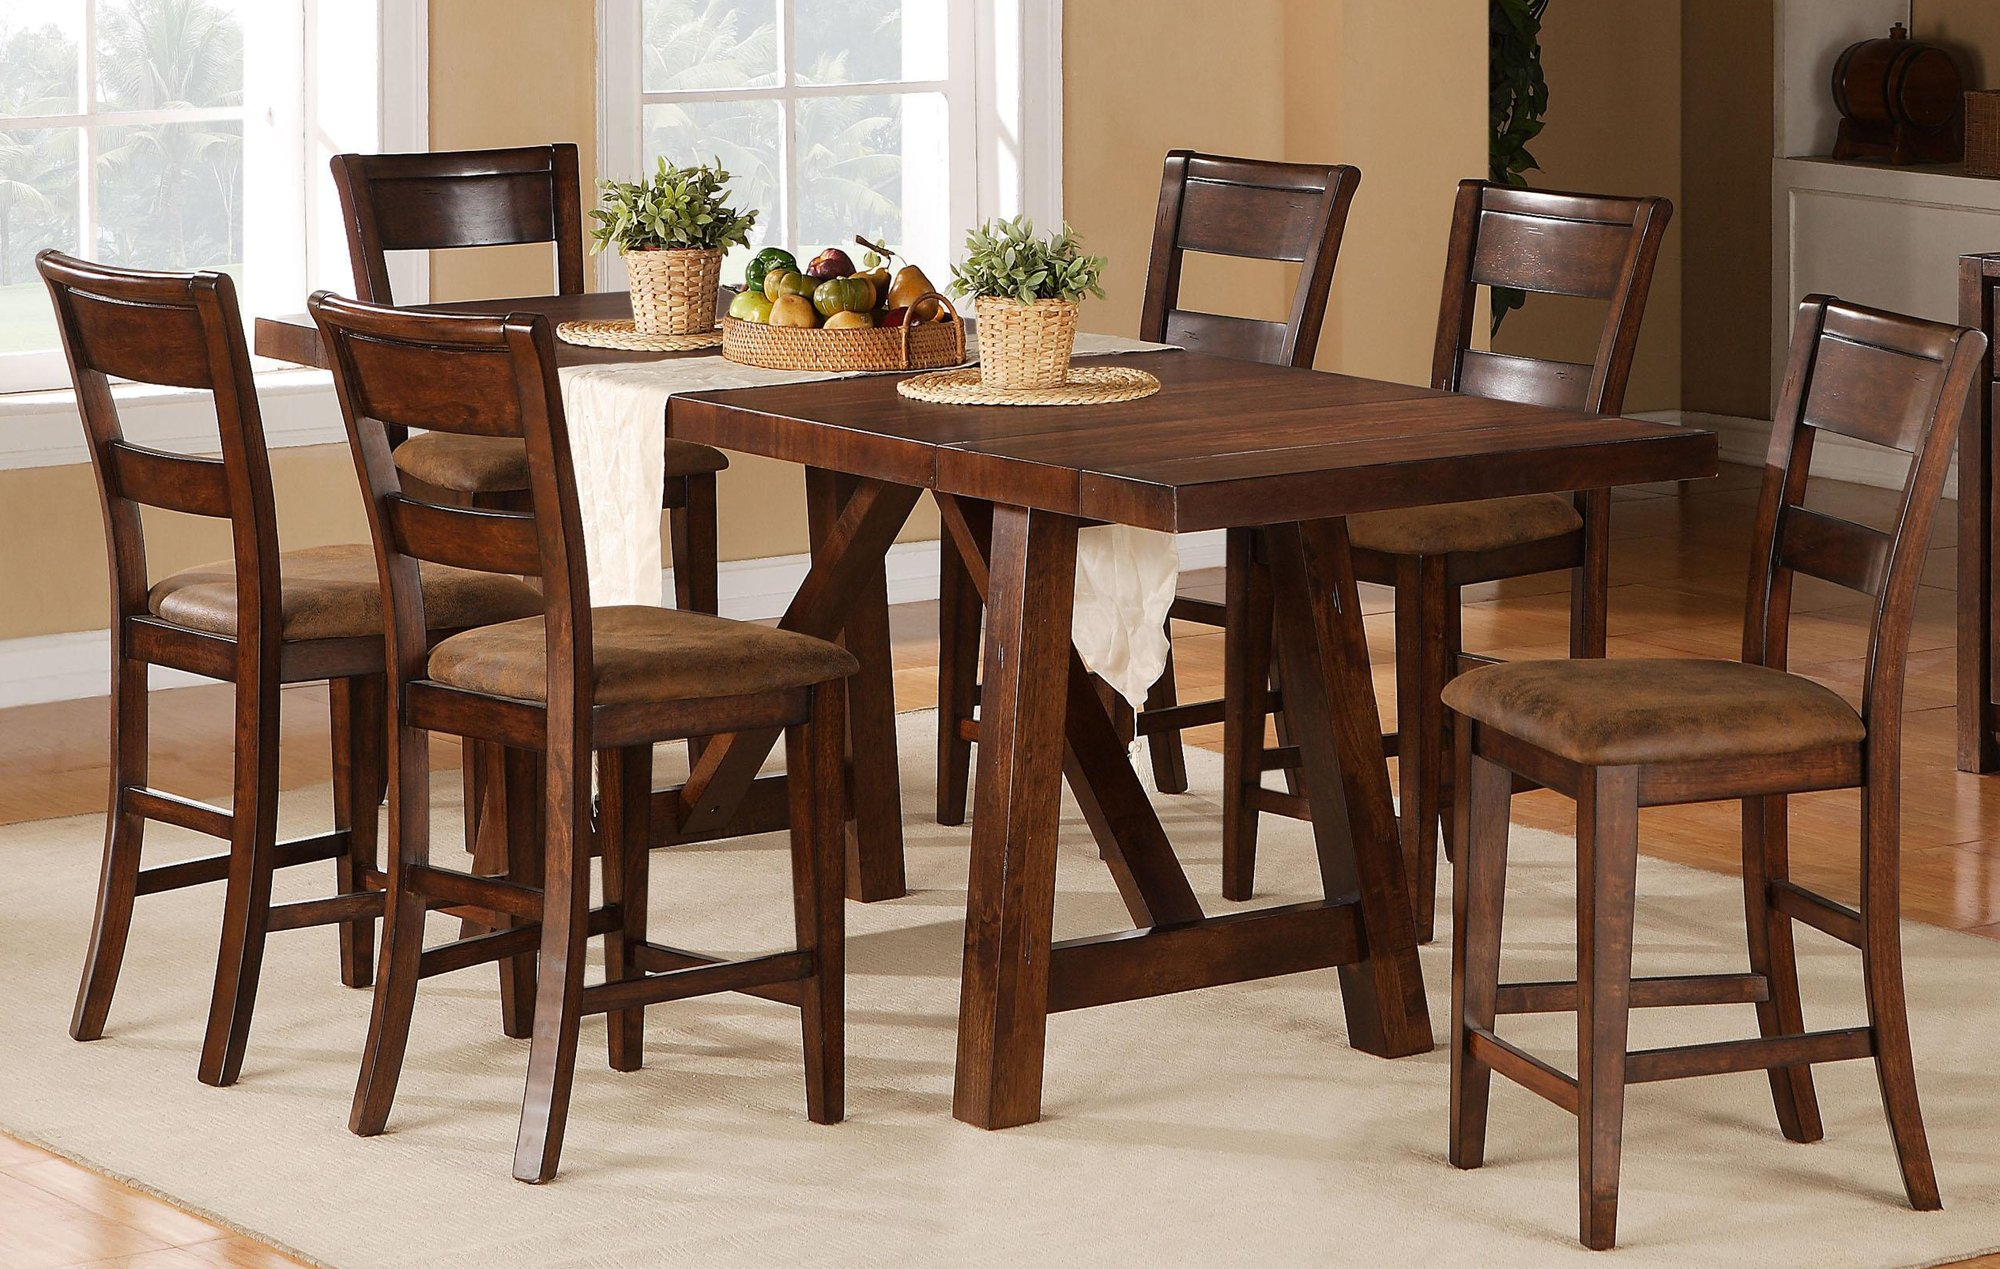 5 Piece Dining Set Transitional Veca Burnished Mango  : Burnished Mango Counter Height Dining Table Contemporary Veca Collection rcwilley image1 from www.rcwilley.com size 2000 x 1269 jpeg 404kB